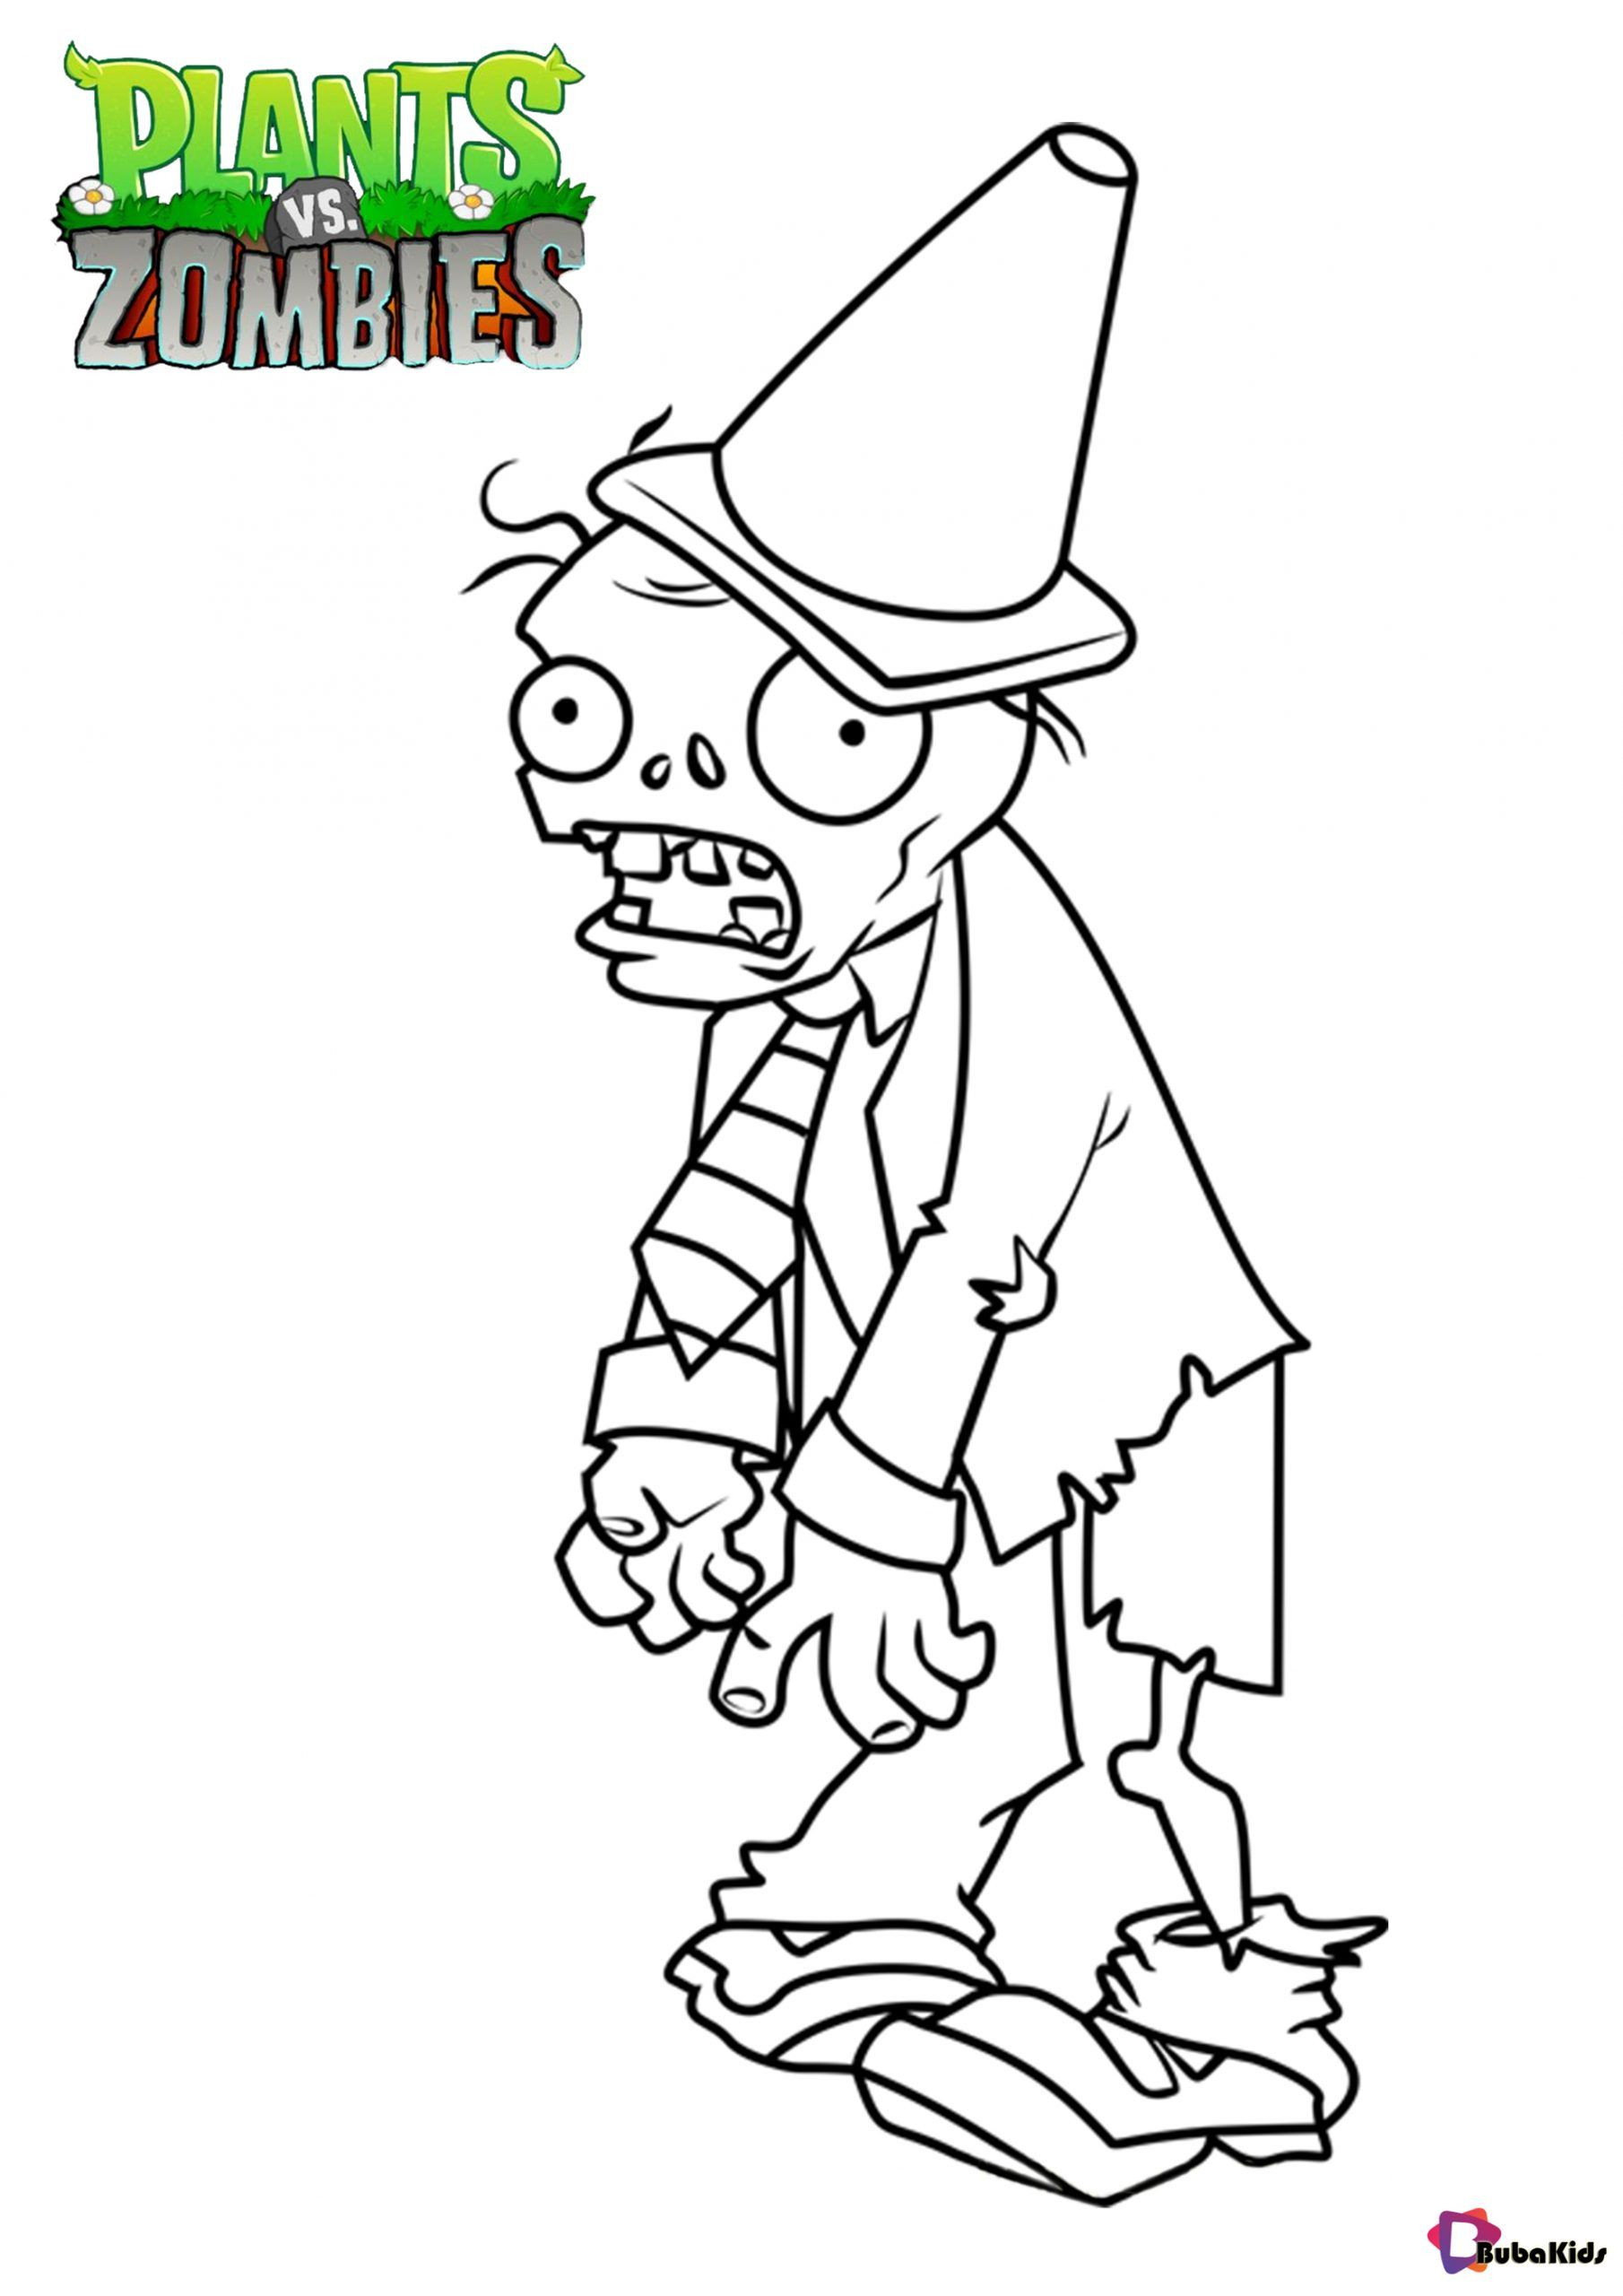 Plants Vs Zombies Conehead Zombie Coloring Page Collection Of Cartoon Coloring Pages For Teenage Print In 2020 Cartoon Coloring Pages Coloring Pages Plants Vs Zombies